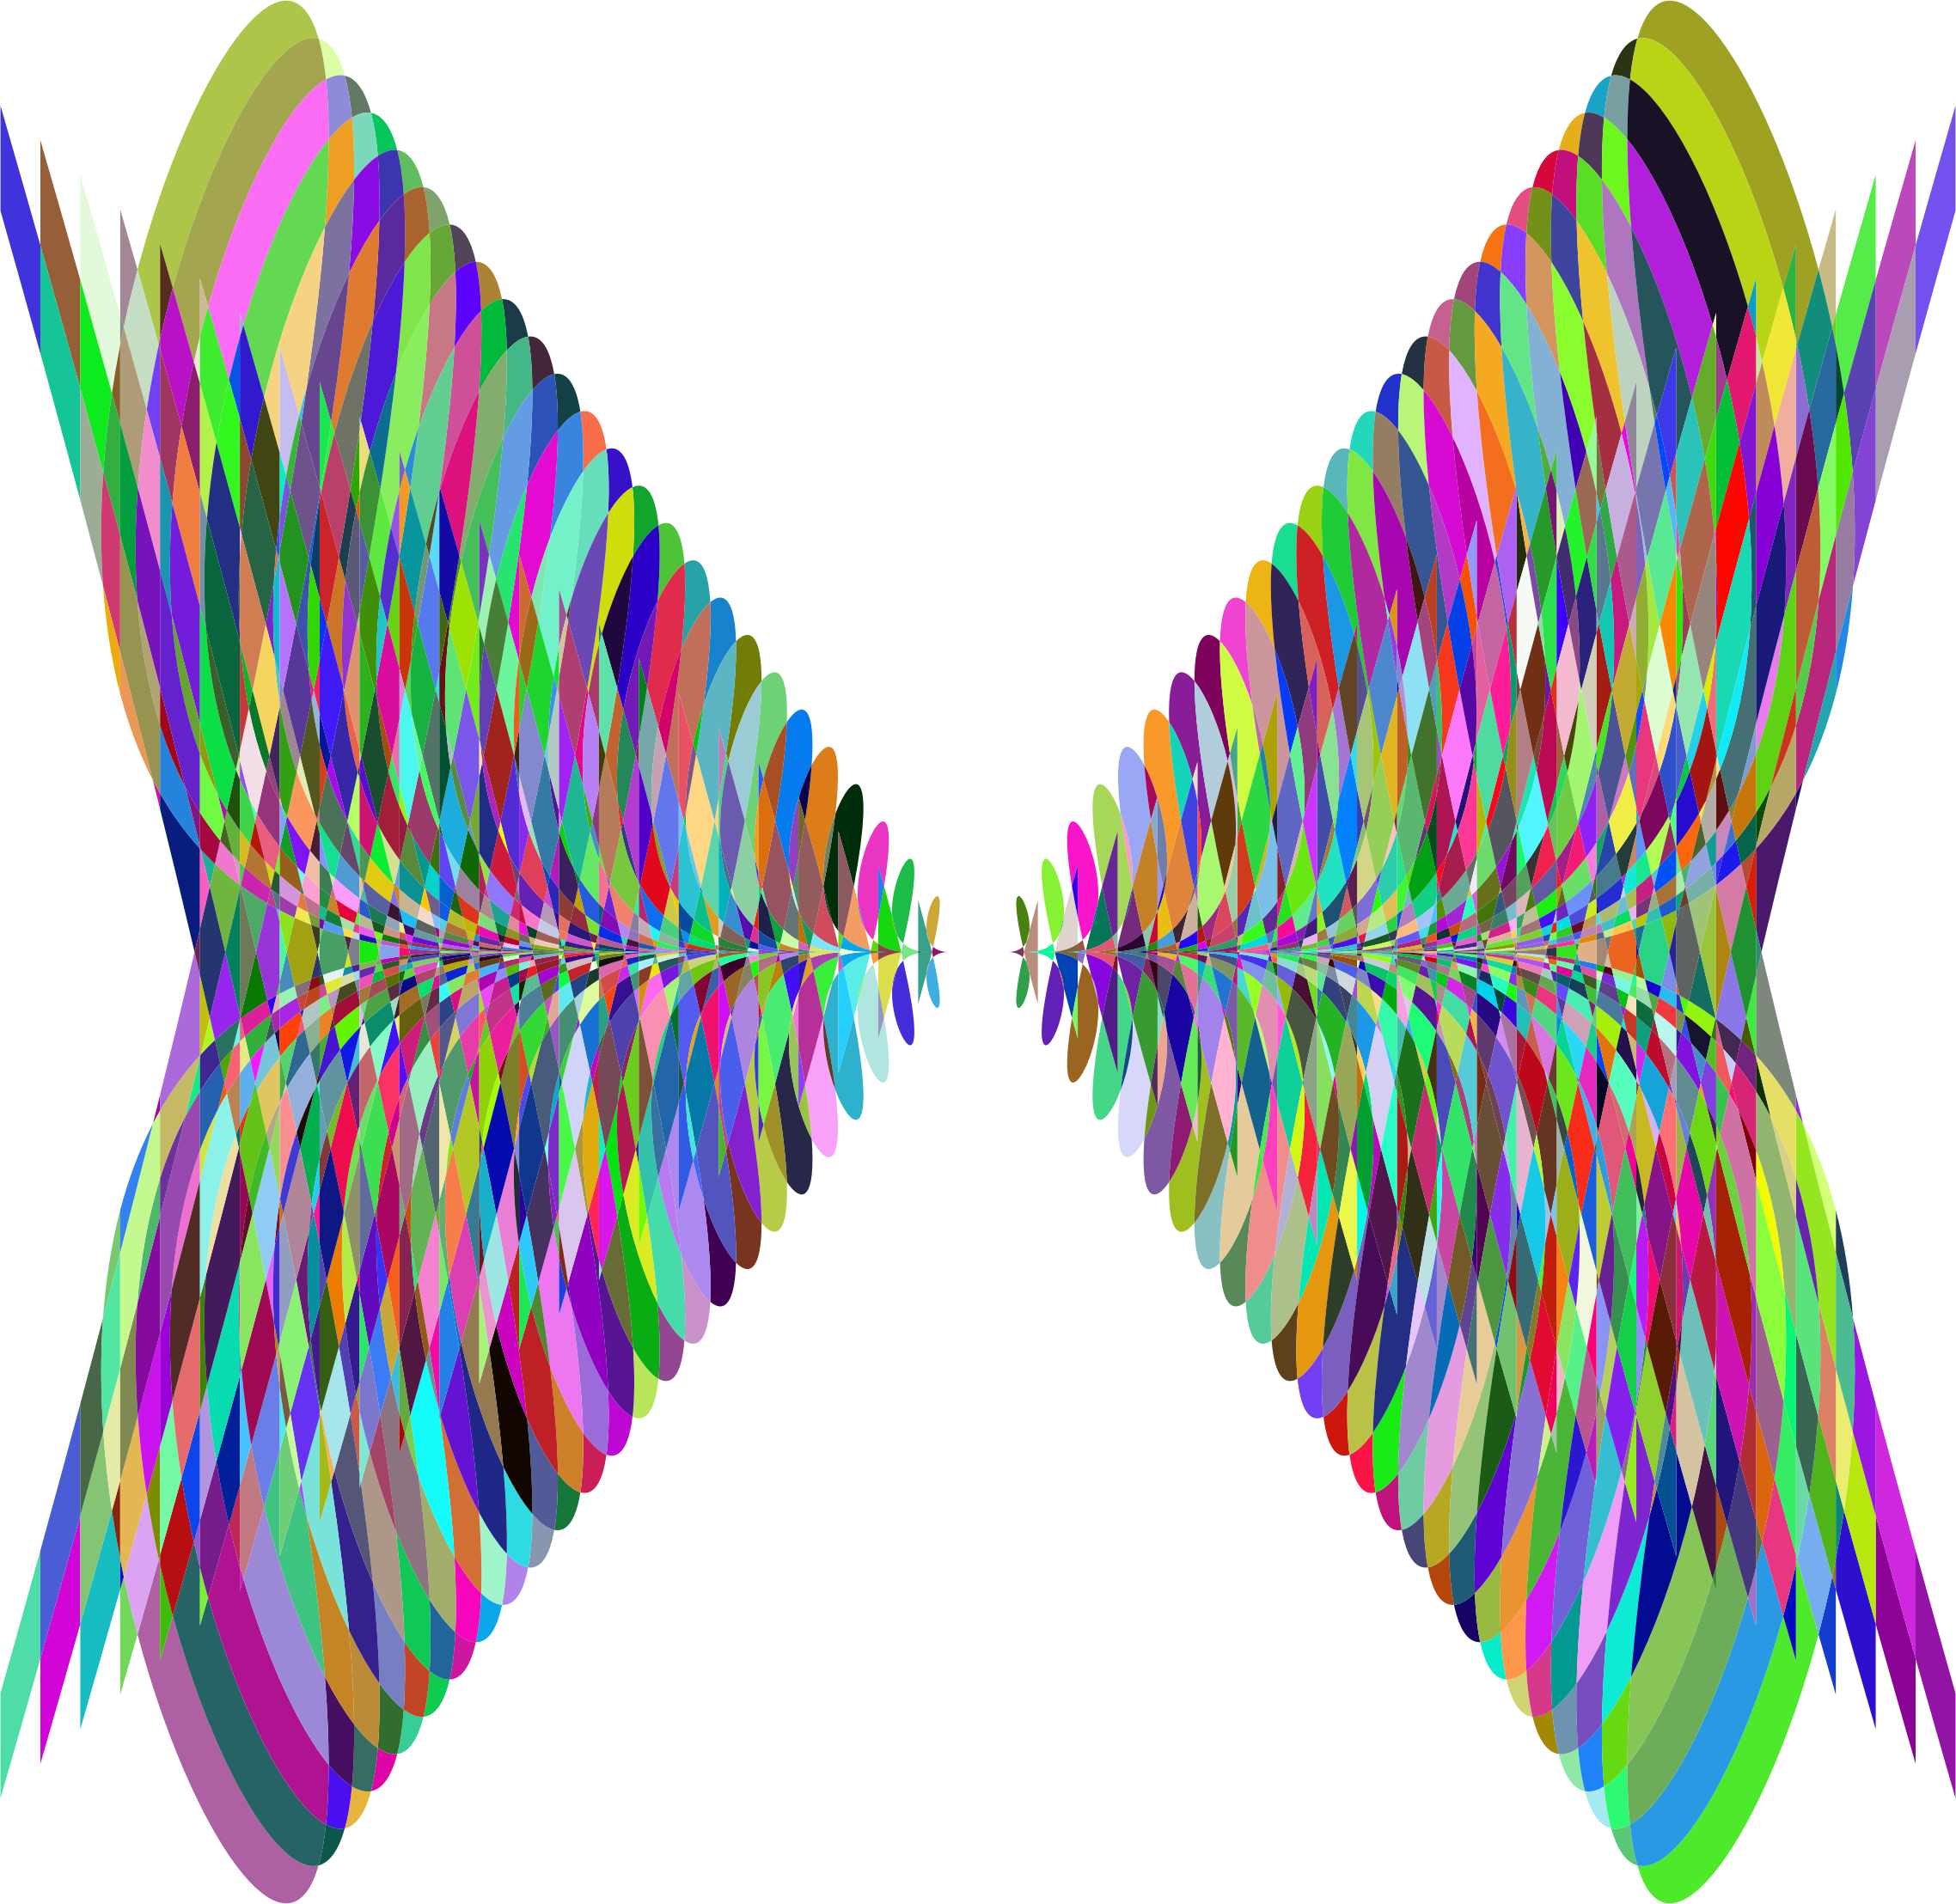 Wing clipart abstract. Prismatic butterfly wings big